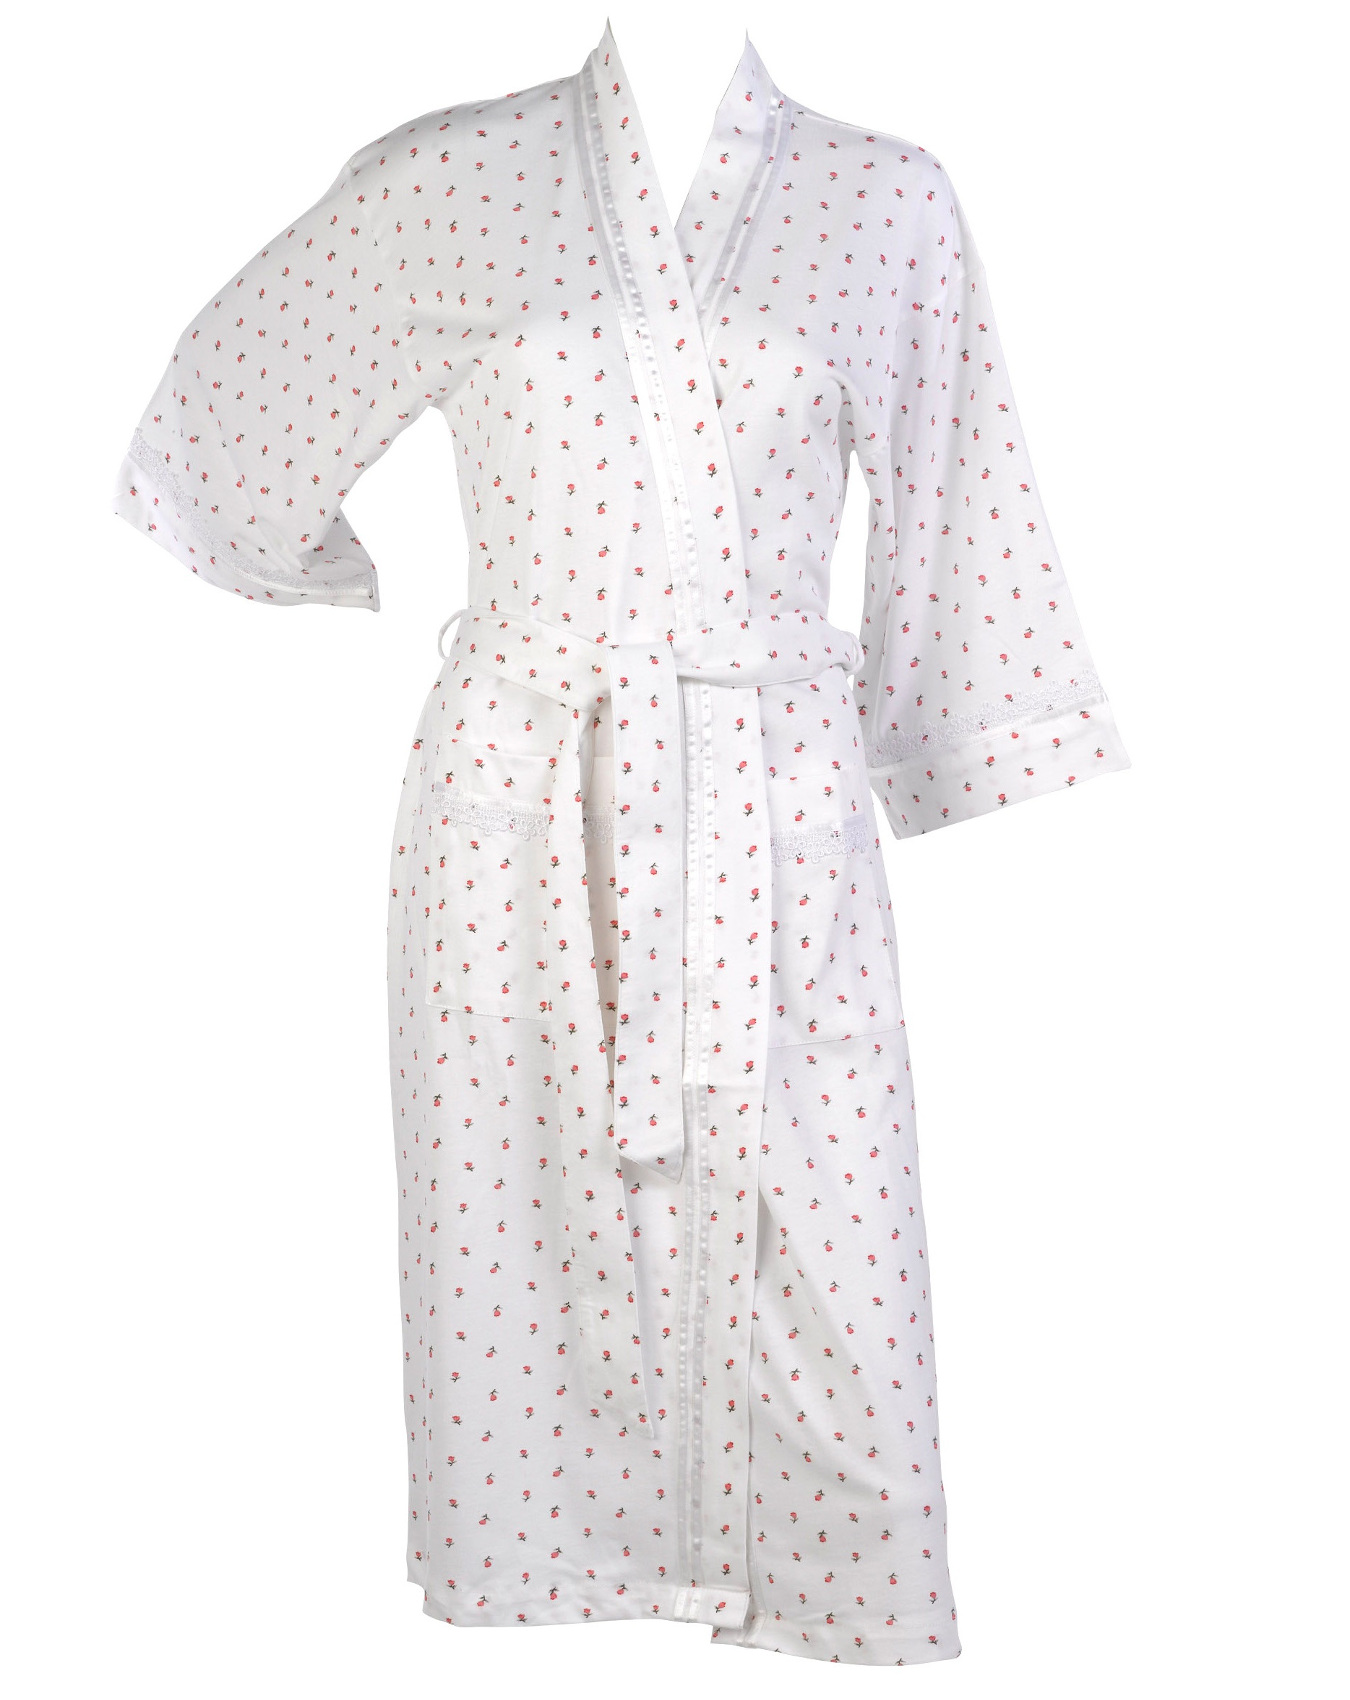 51a28fc3e9e Details about Womens 100% Cotton Floral Dressing Gown Robe Ladies  Lightweight Nightwear Wrap